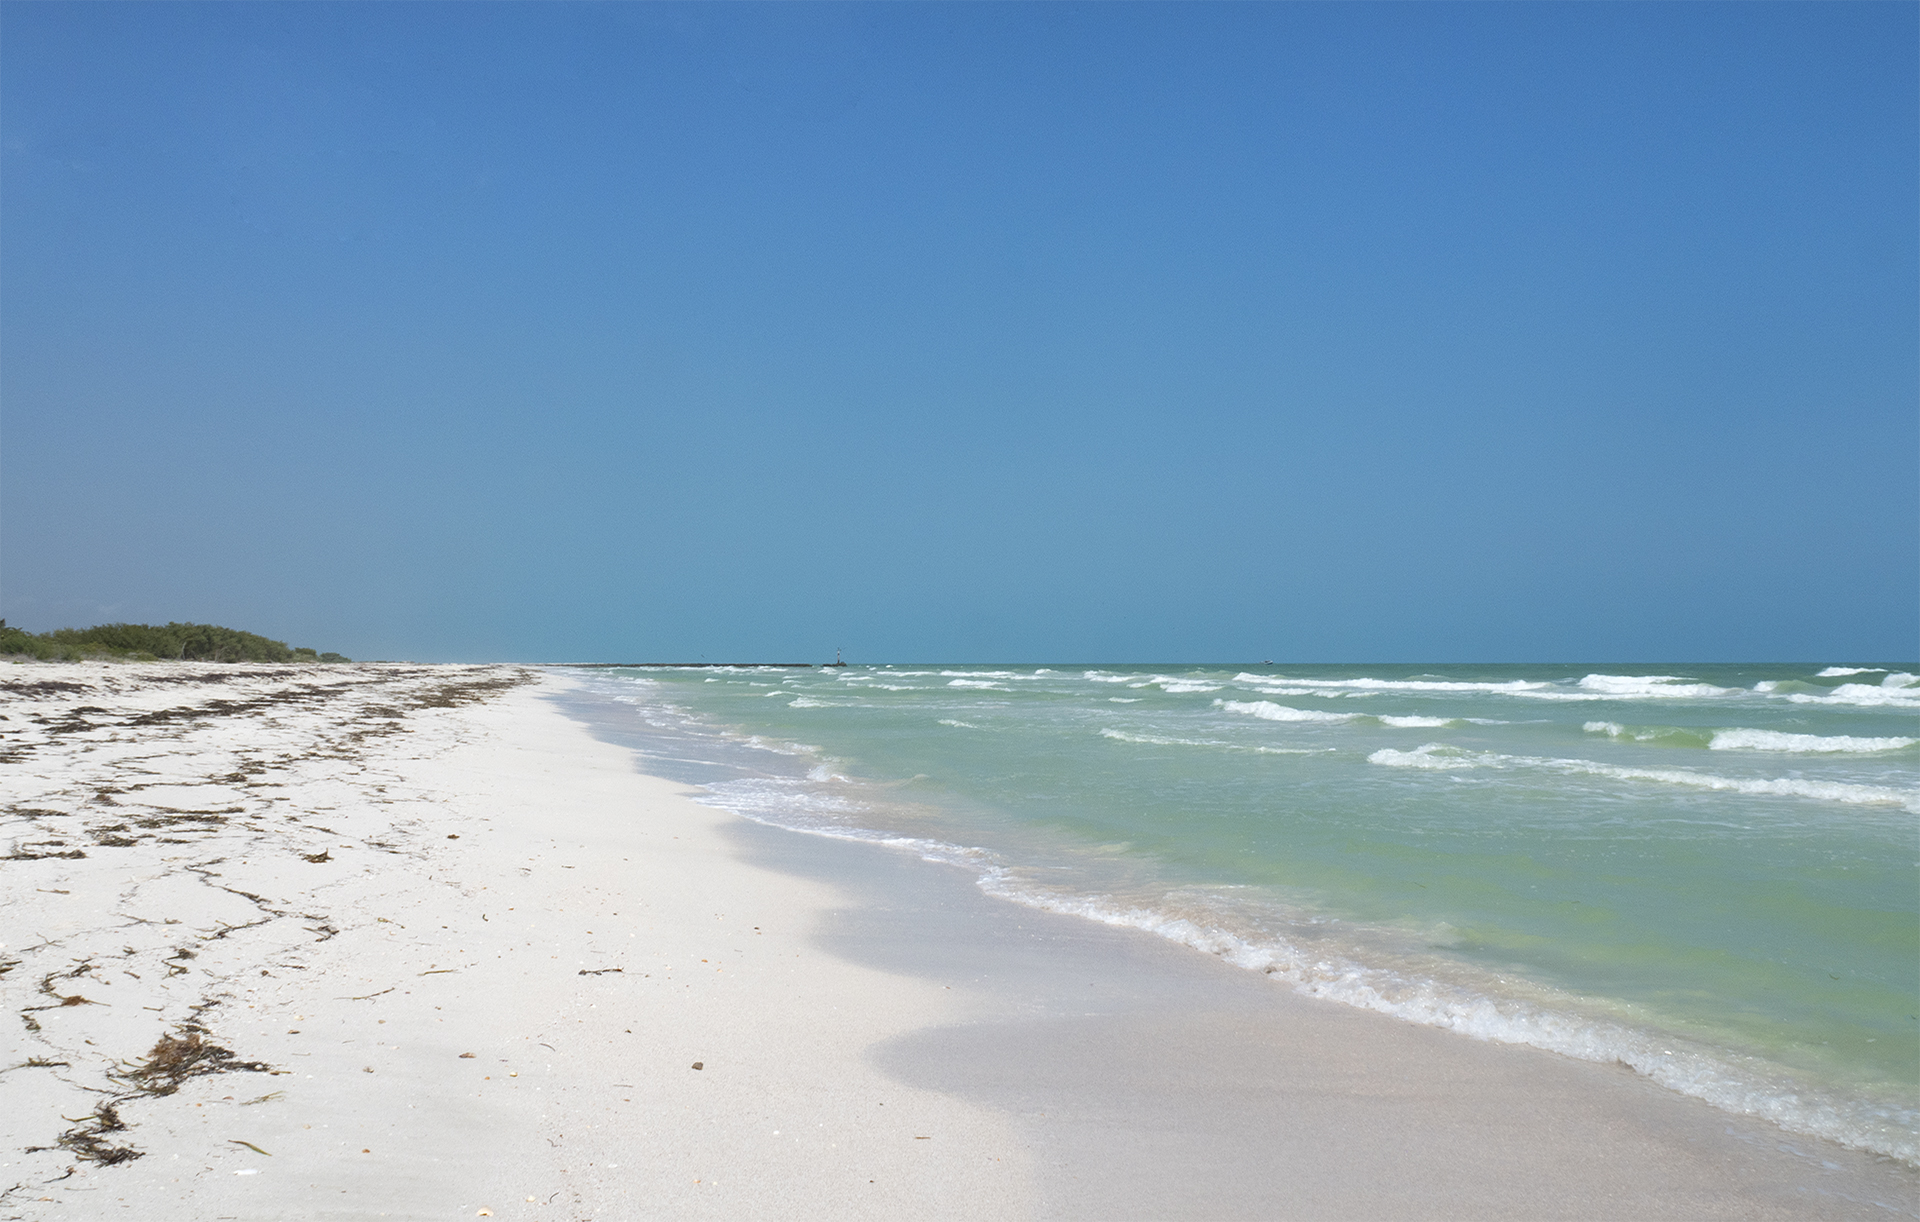 Blue sky, an endless beach of sand and the waves coming to shore from the Gulf of Mexico